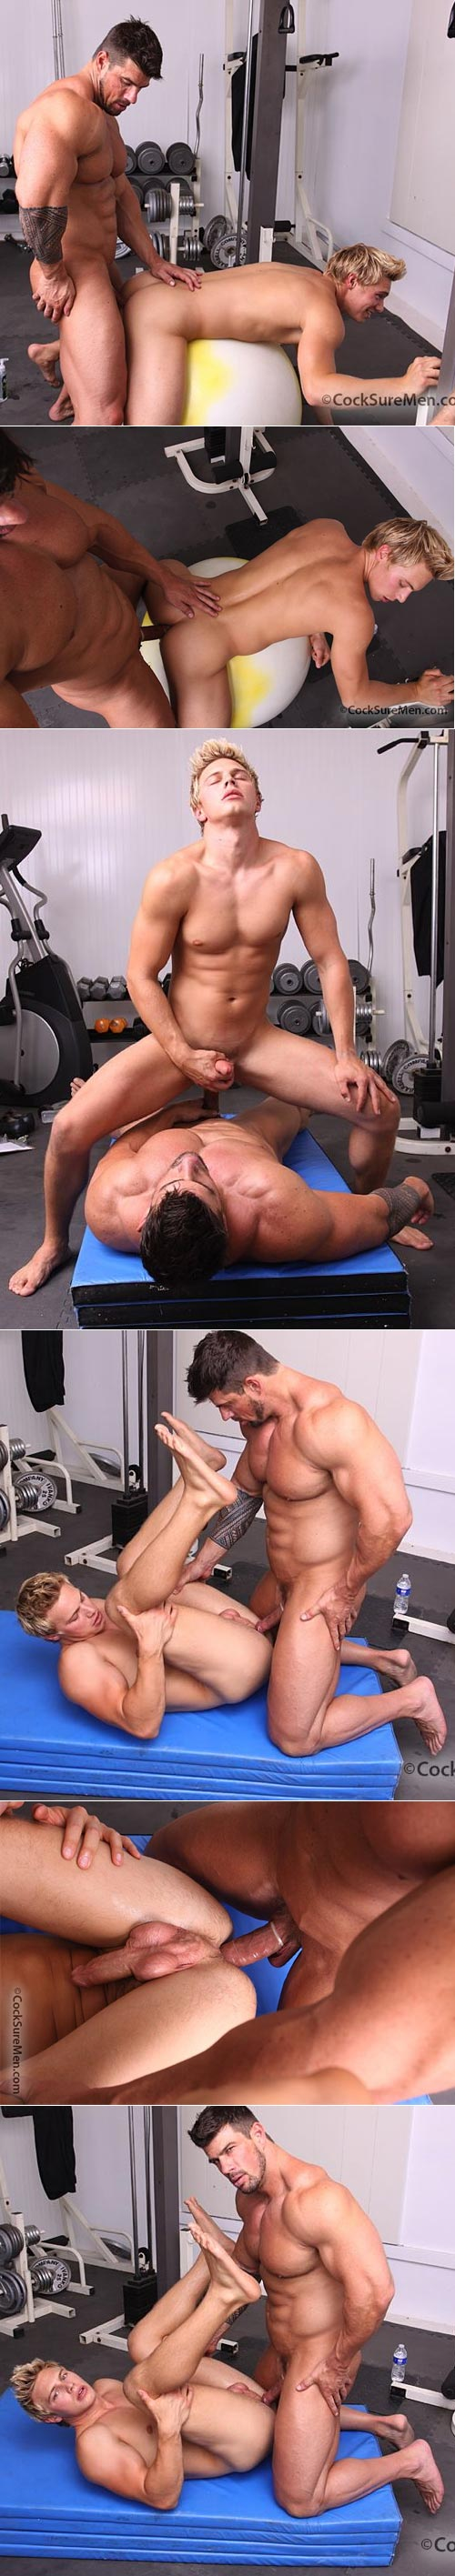 Zeb Atlas Gay Movies 97